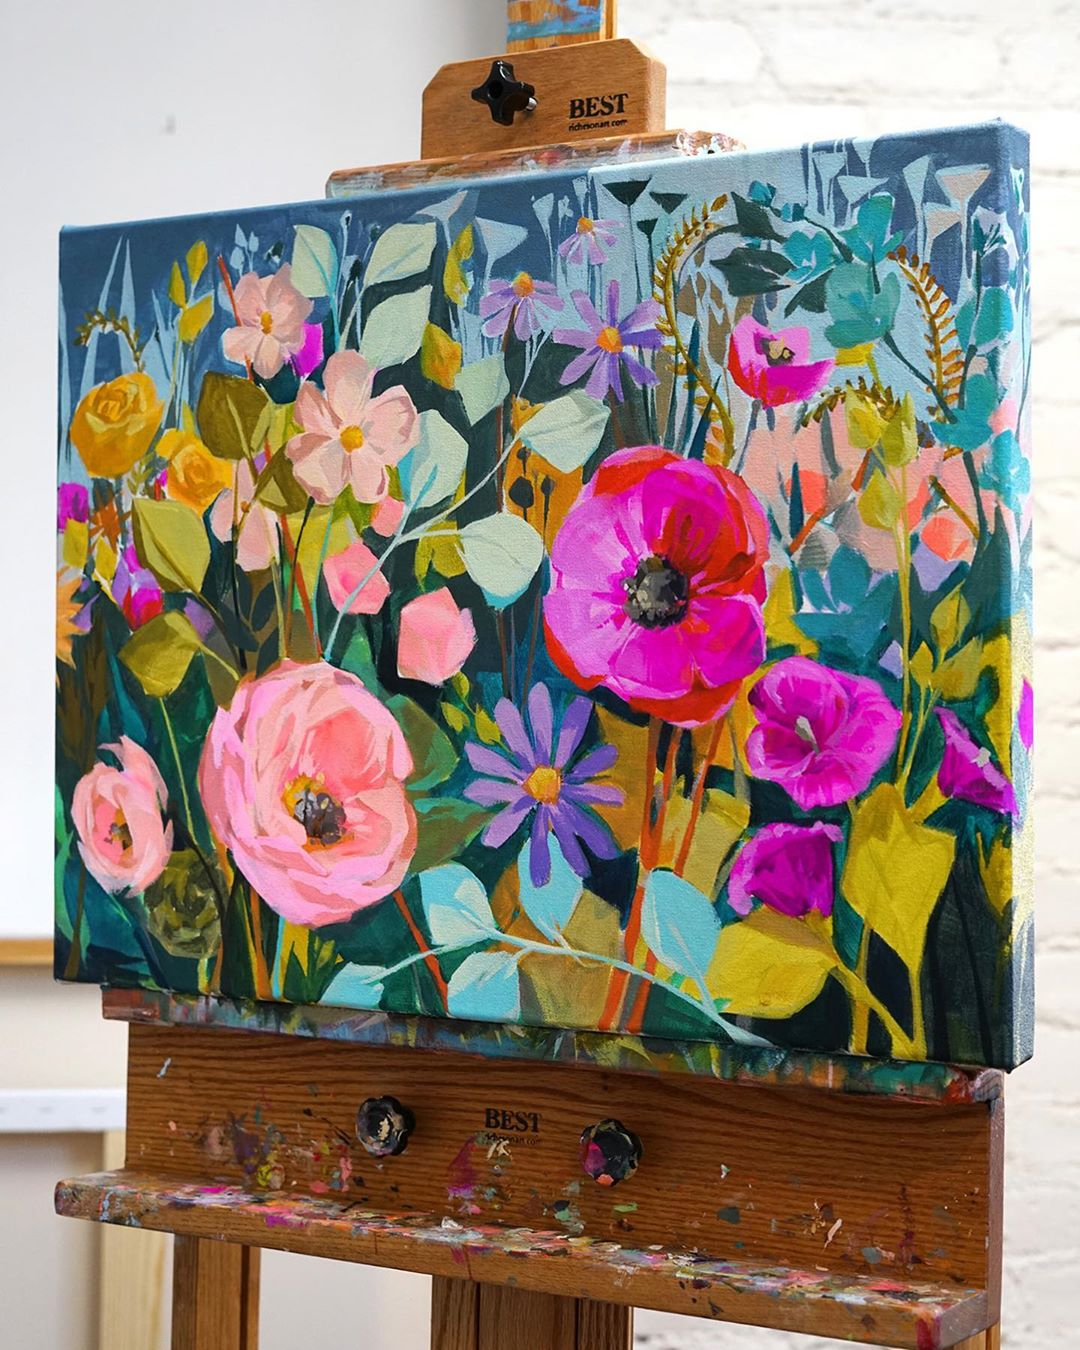 Flower Painting by Jess Franks